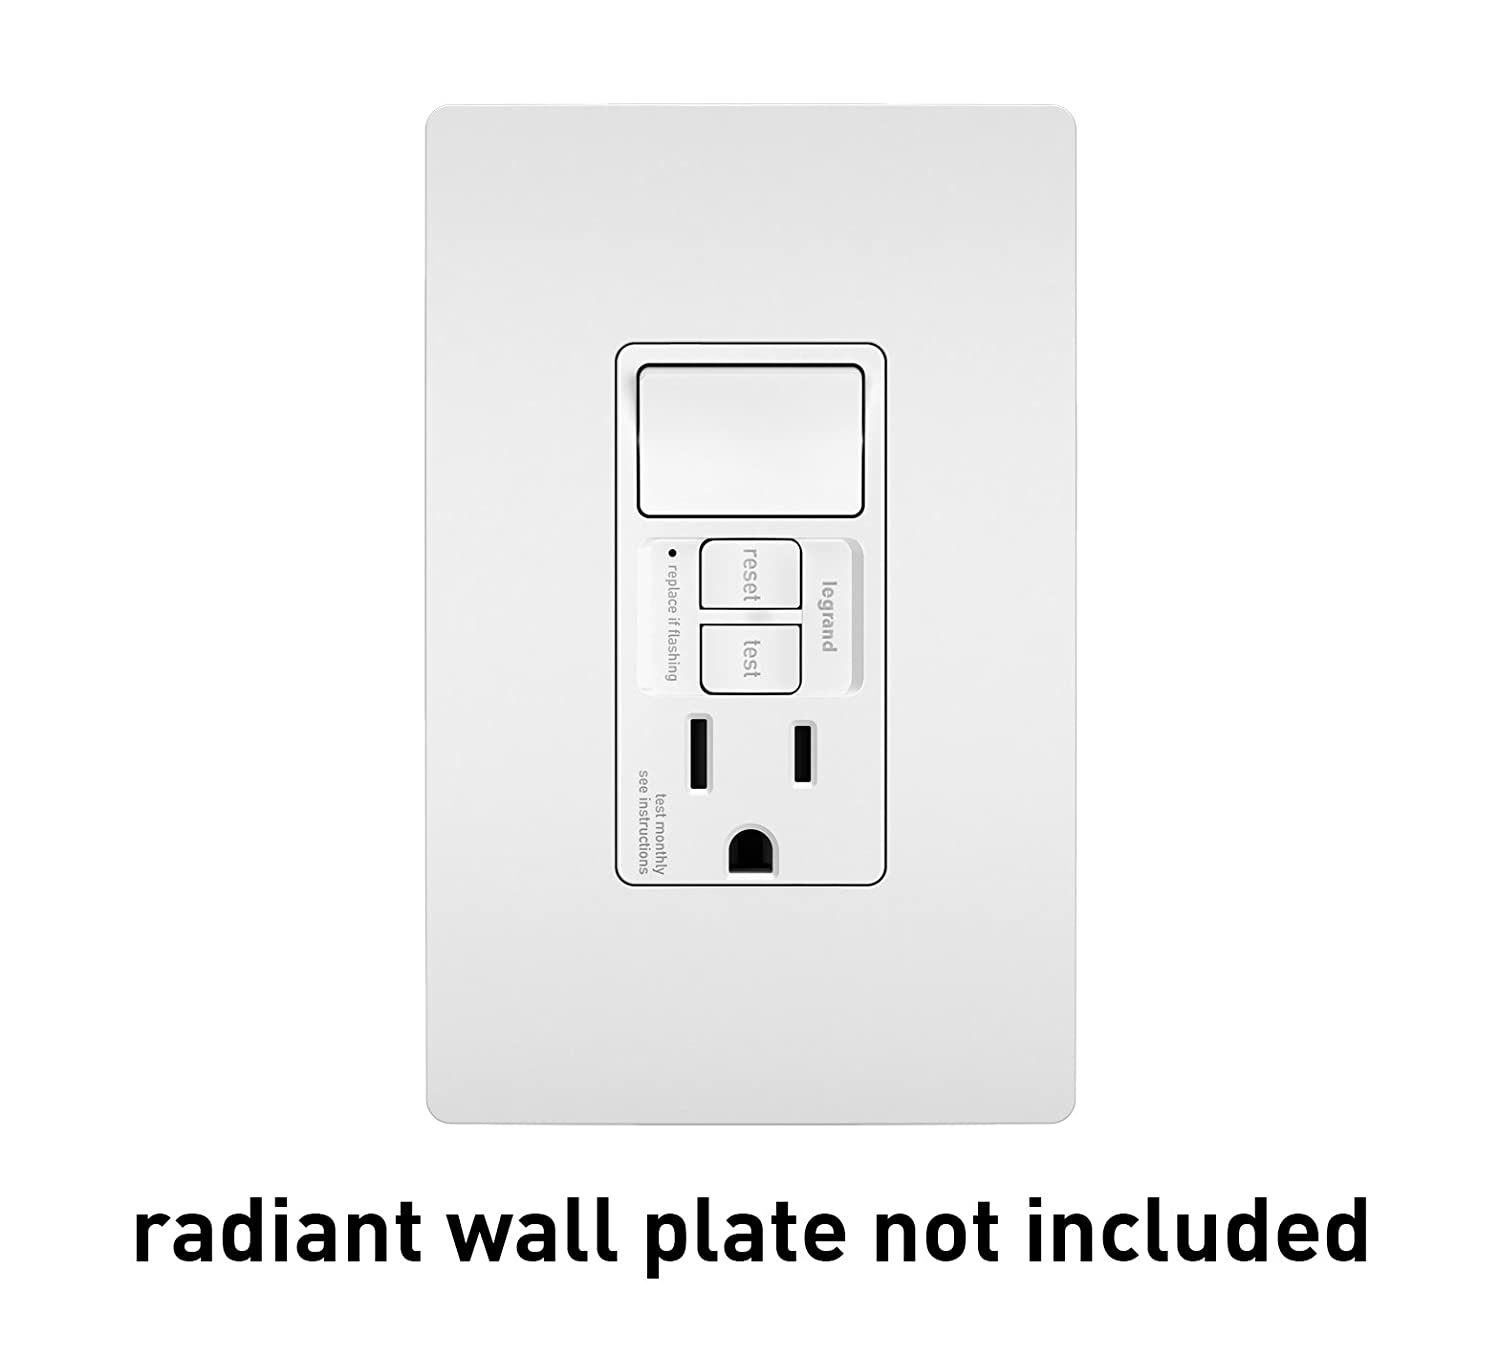 Legrand Pass Seymour Radiant 1597swttrwccd4 15 Amp Combination Electrical How Do I Wire A Gfci Switch Combo Home Improvement Self Test Tamper Resistant Safety Outlet Single Pole White Ground Fault